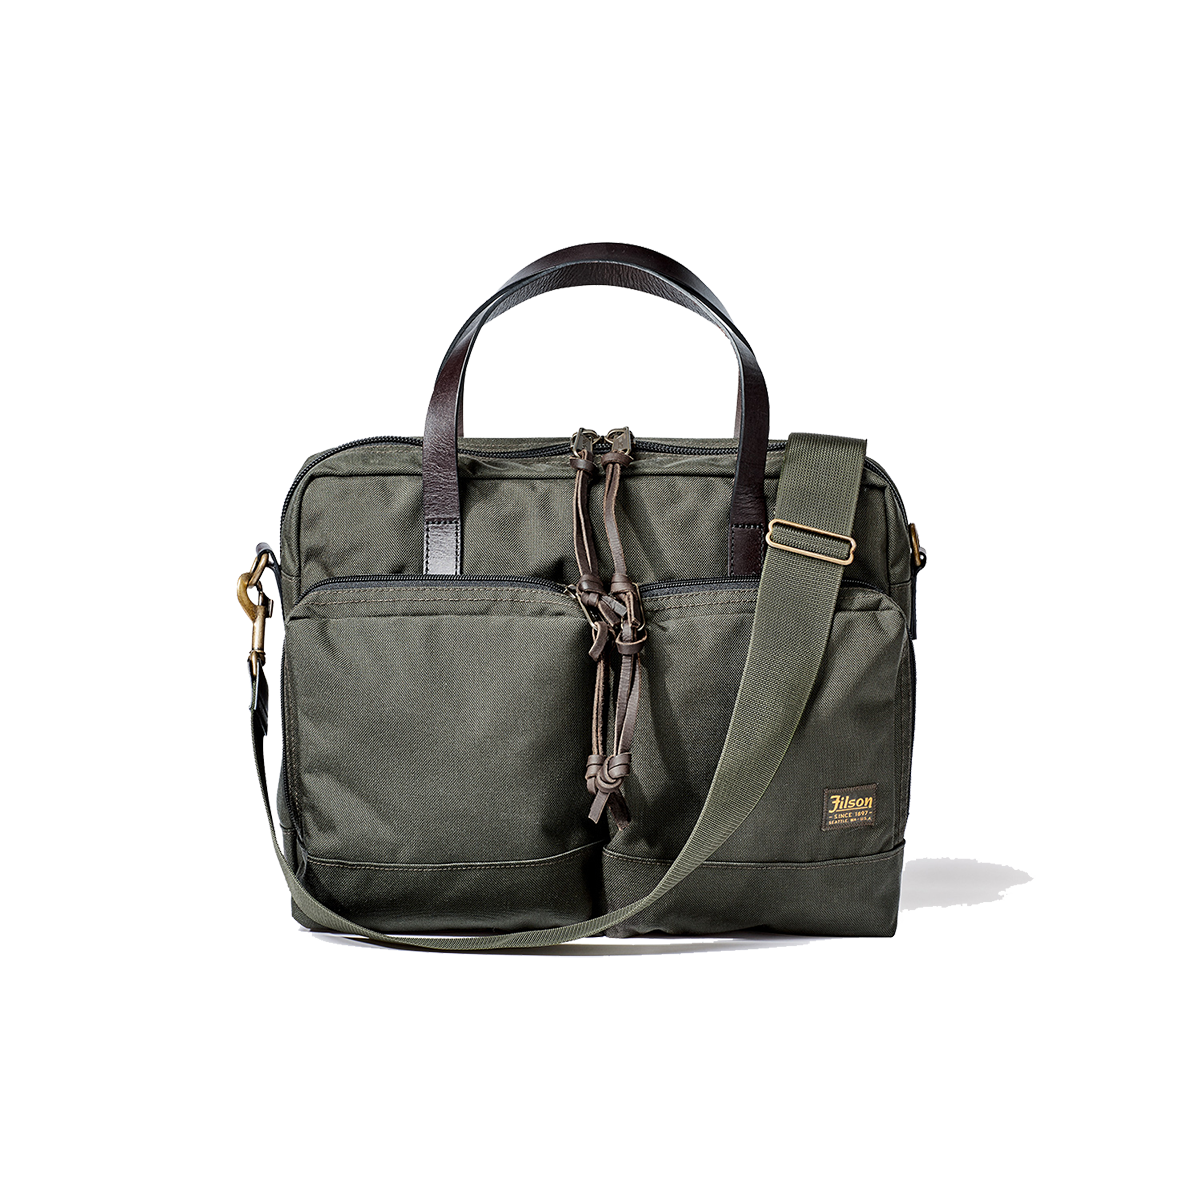 Dryden Briefcase - Otter Green